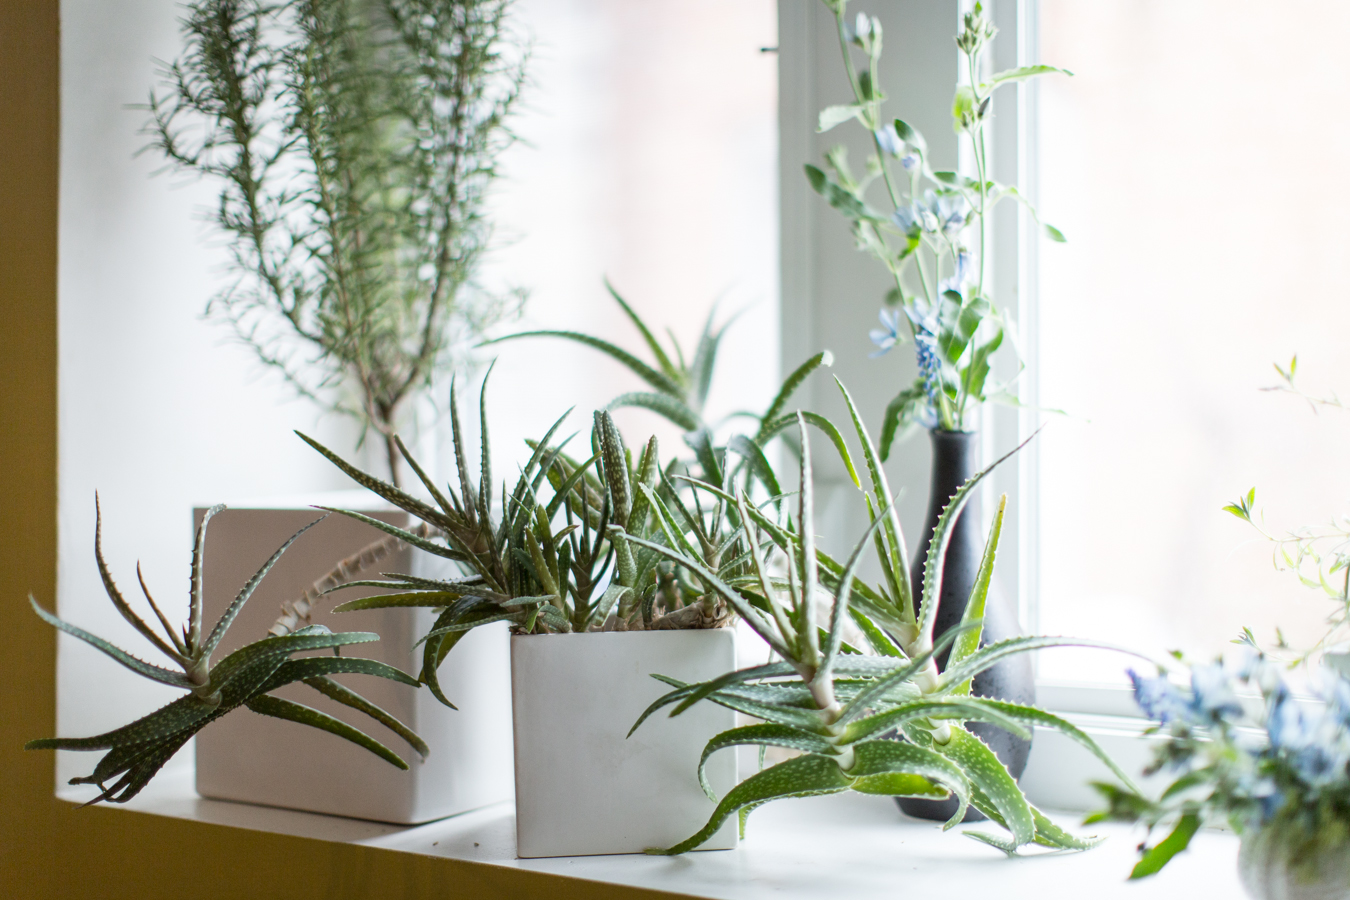 In a Dry Room: Succulents